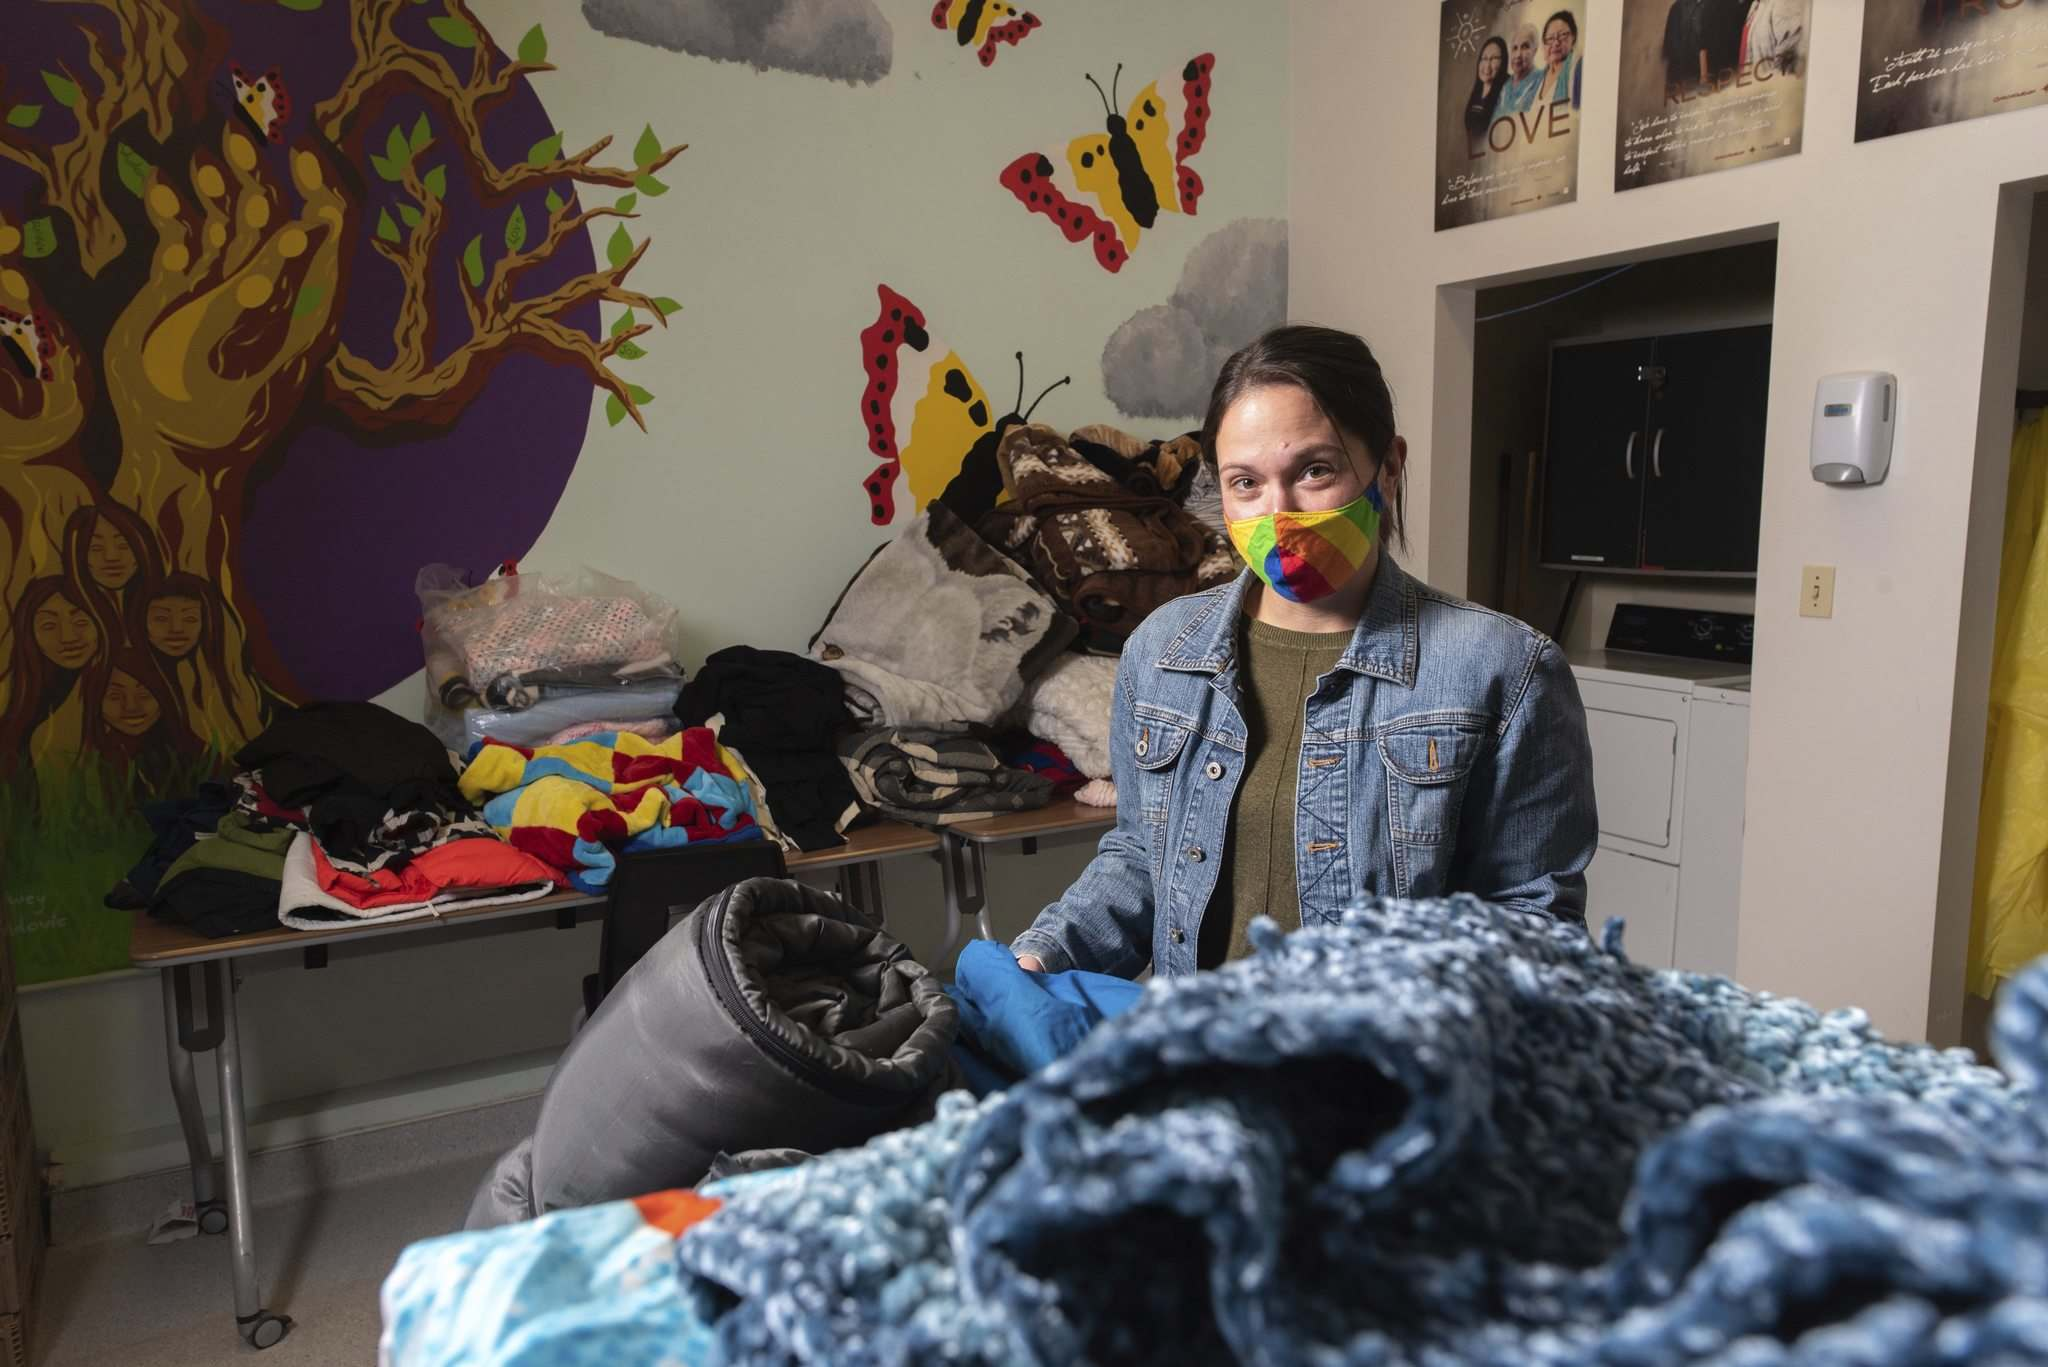 """There's almost an upside to this pandemic that it's given people an opportunity to step back and realize how fortunate amny of us are,"" said Tara Zajac, executive director of the North Point Douglas Women's Centre. (Jesse Boily / Winnipeg Free Press files)</p>"